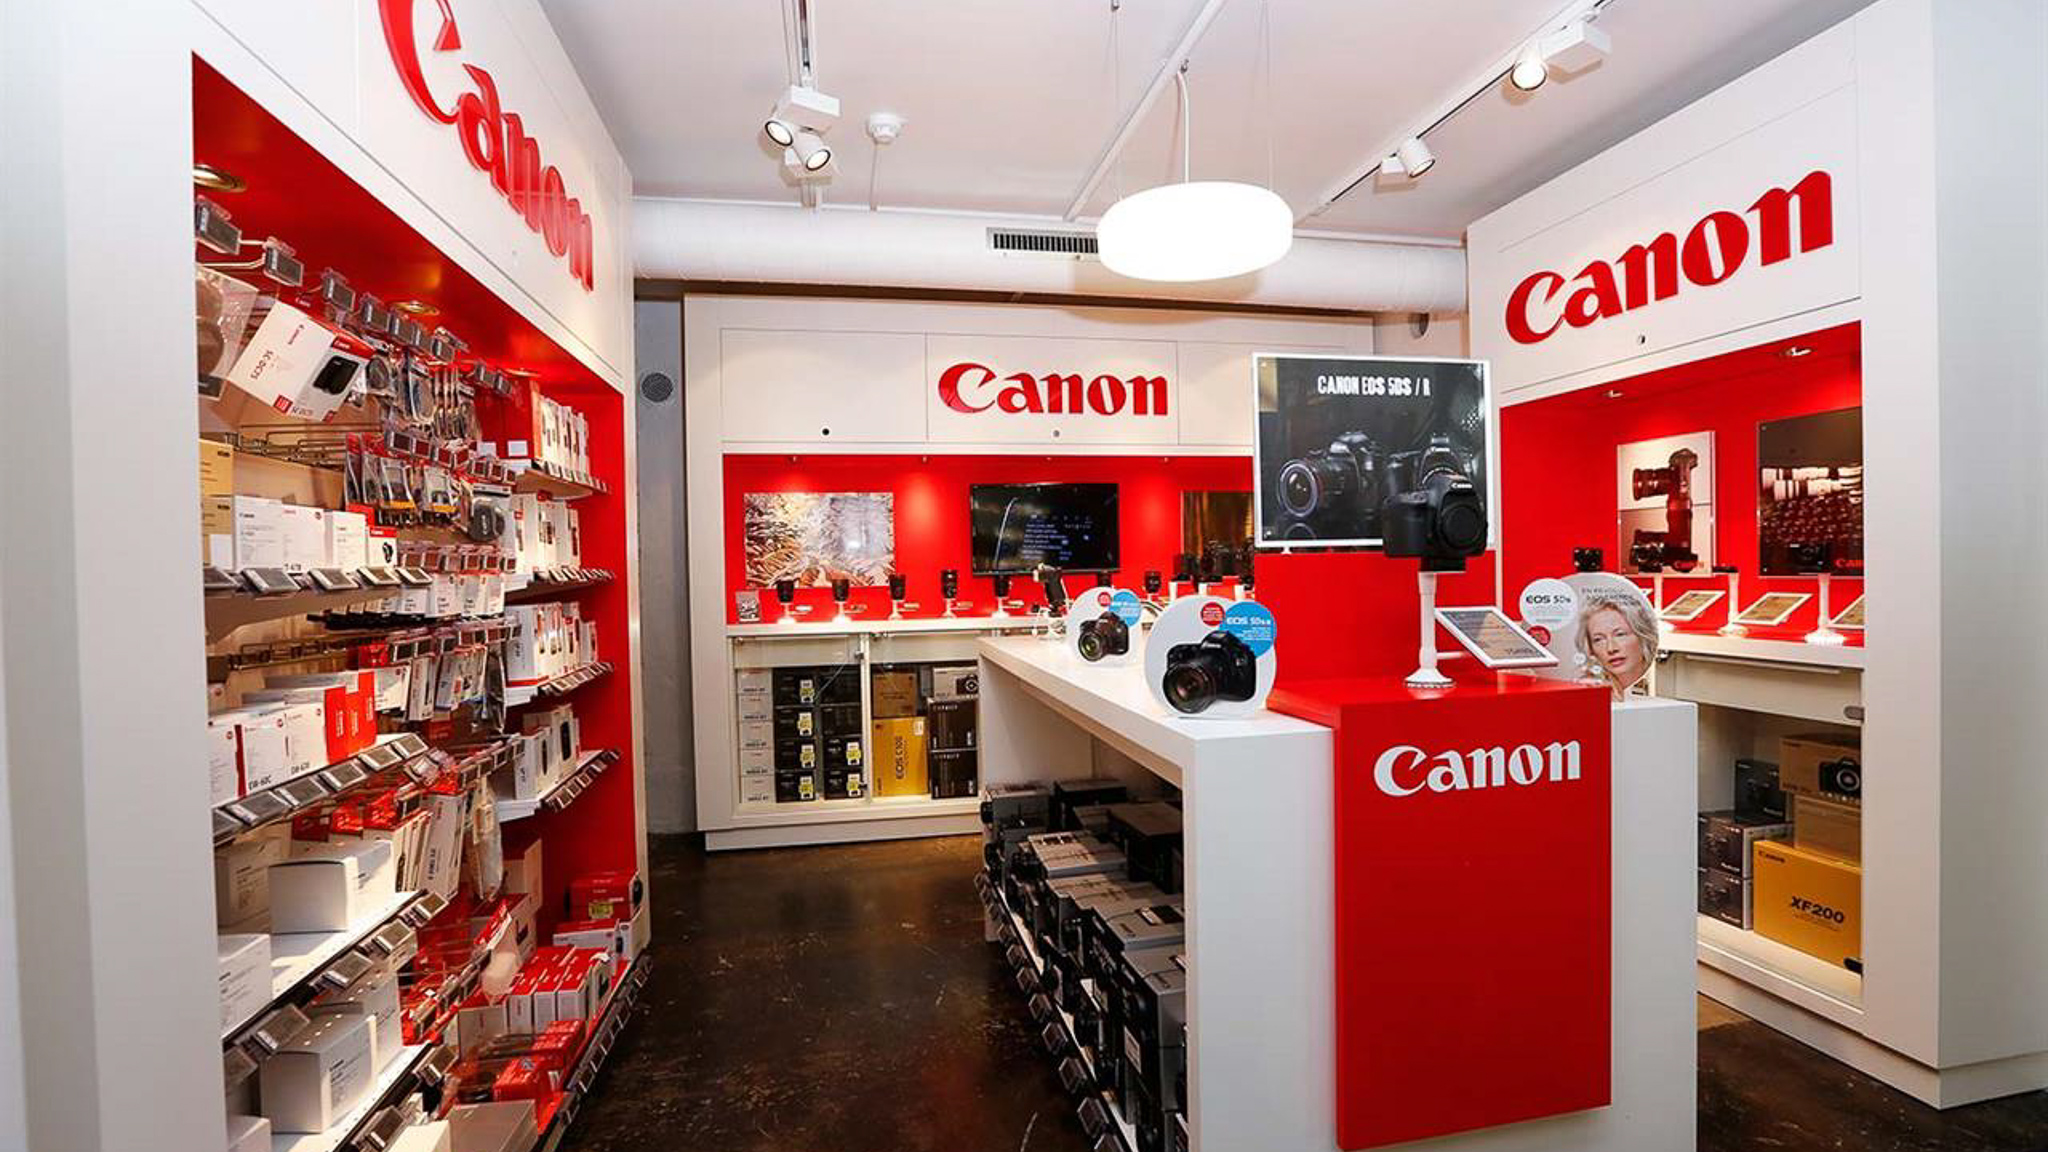 Canon-dager hos Interfoto